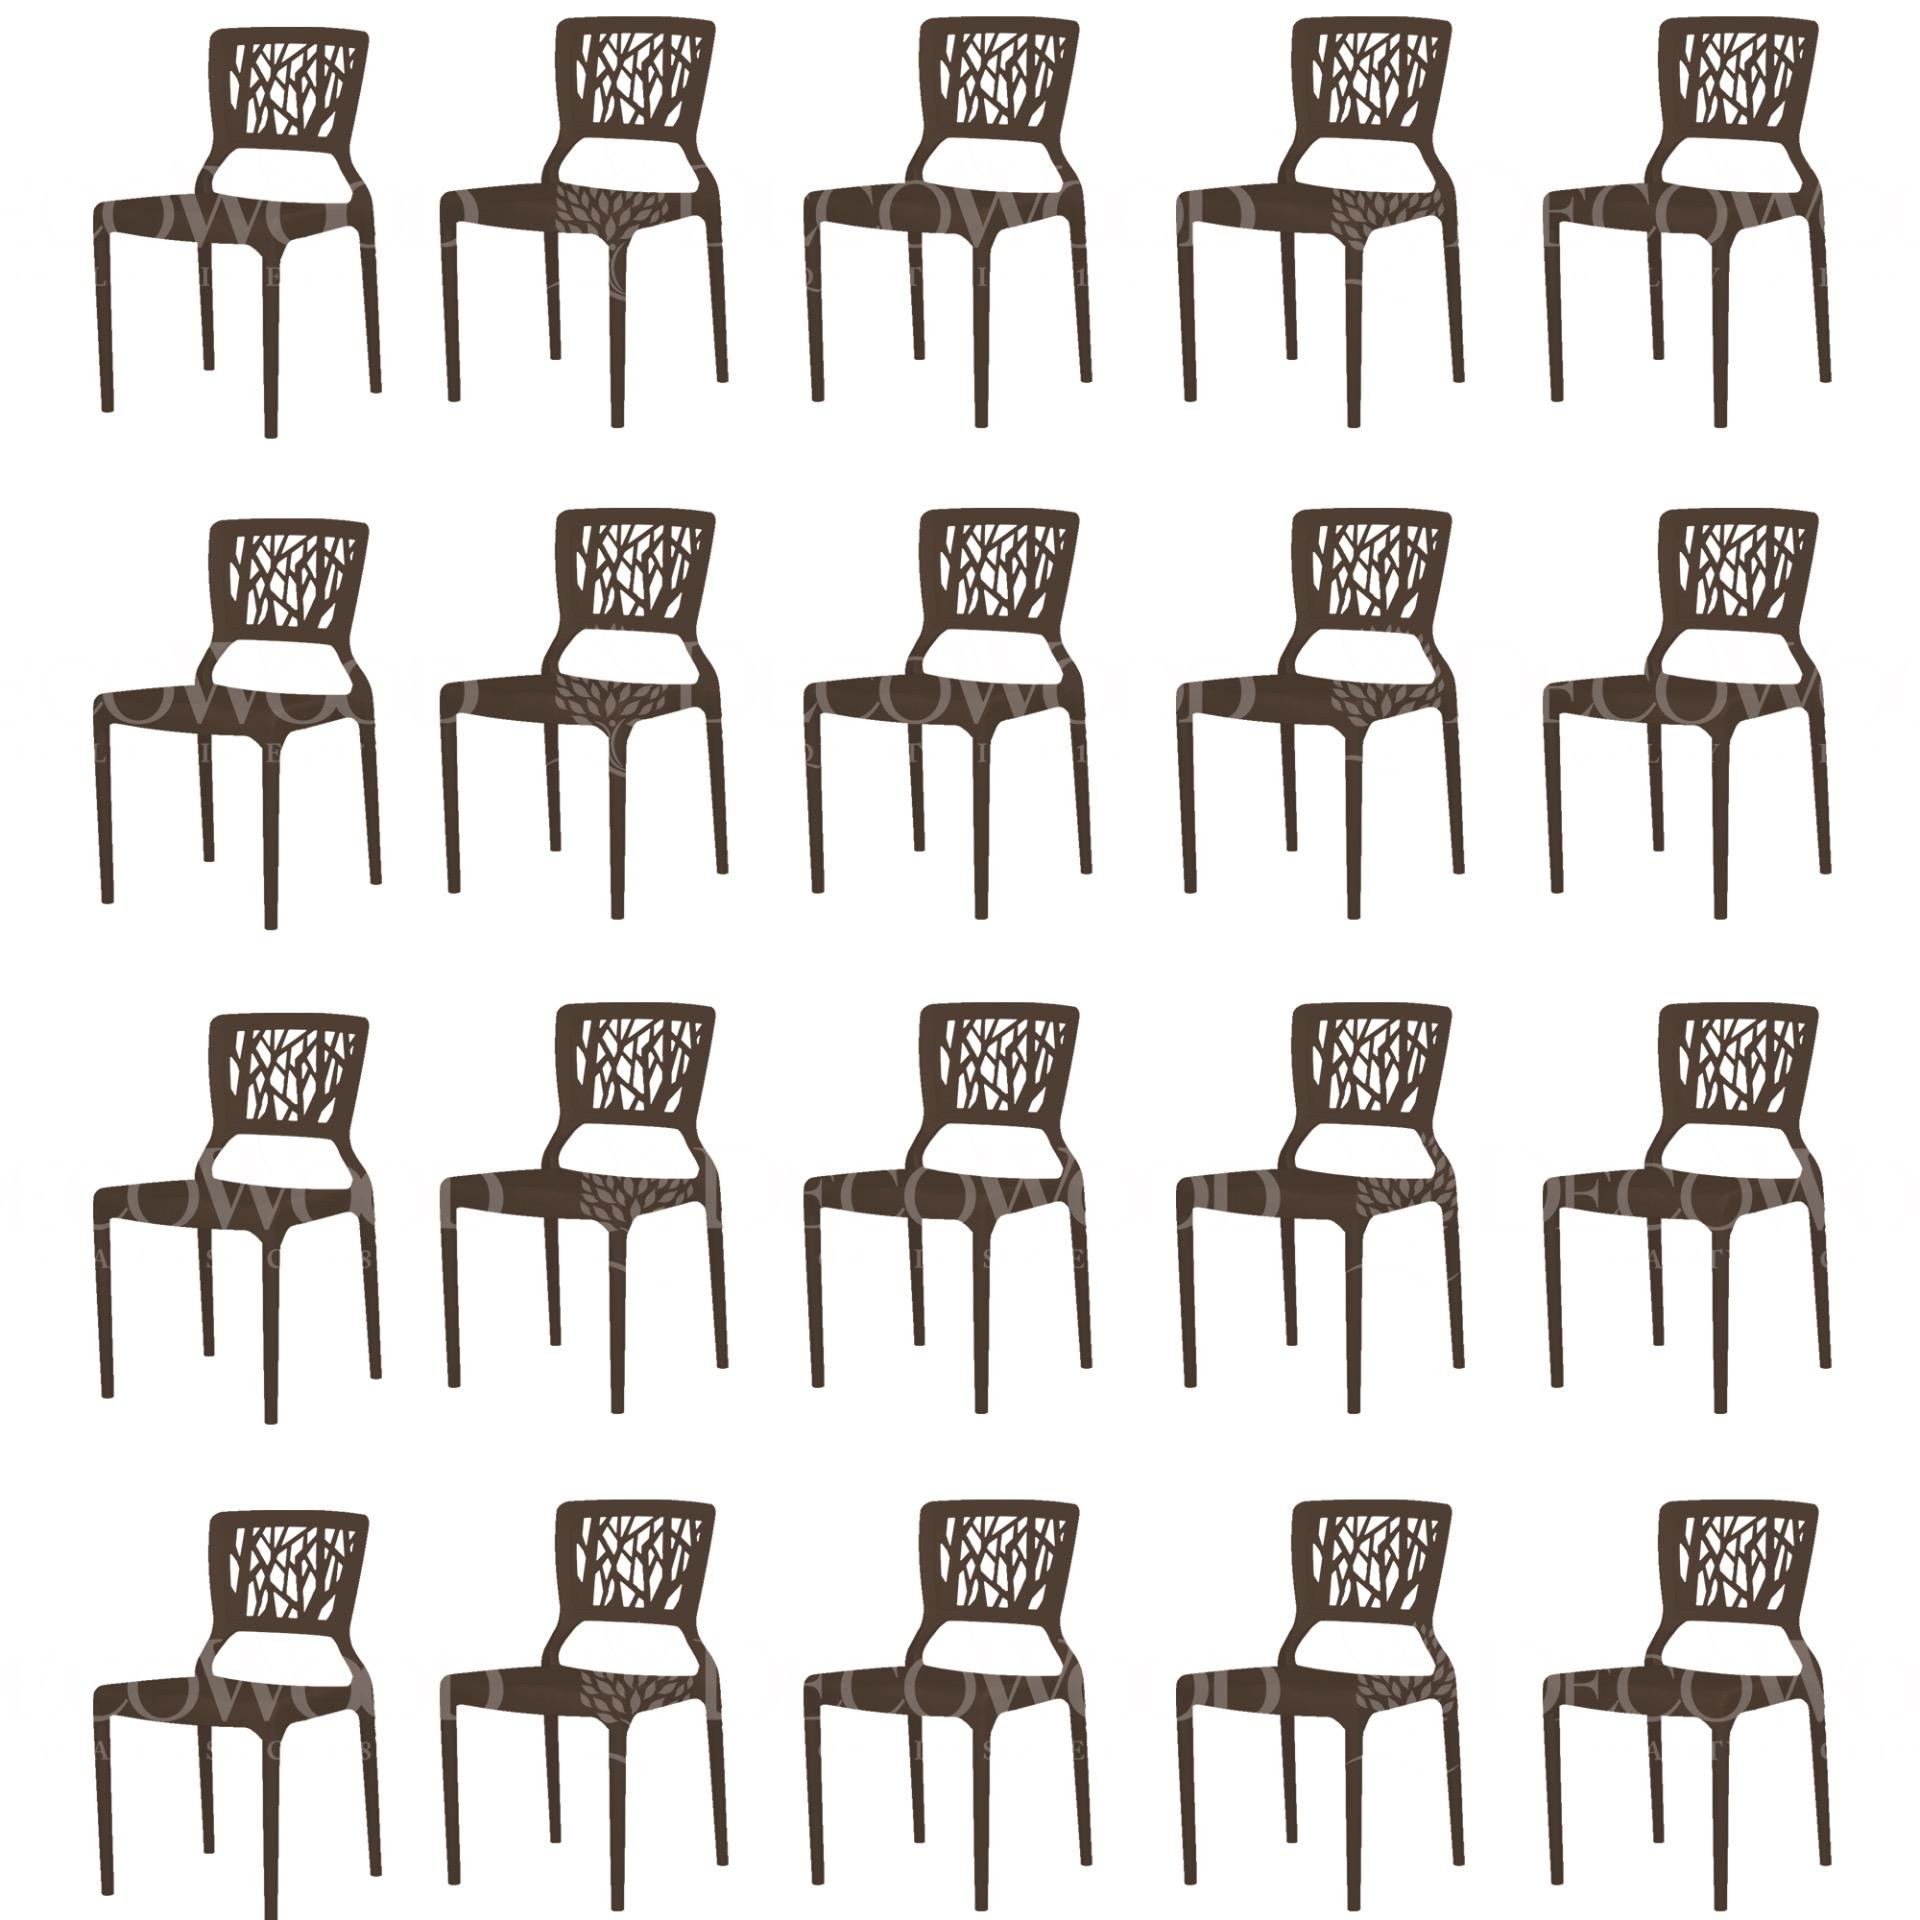 Set Of 20 High Quality Stackable Dining Chair Plastic Chair Outdoor